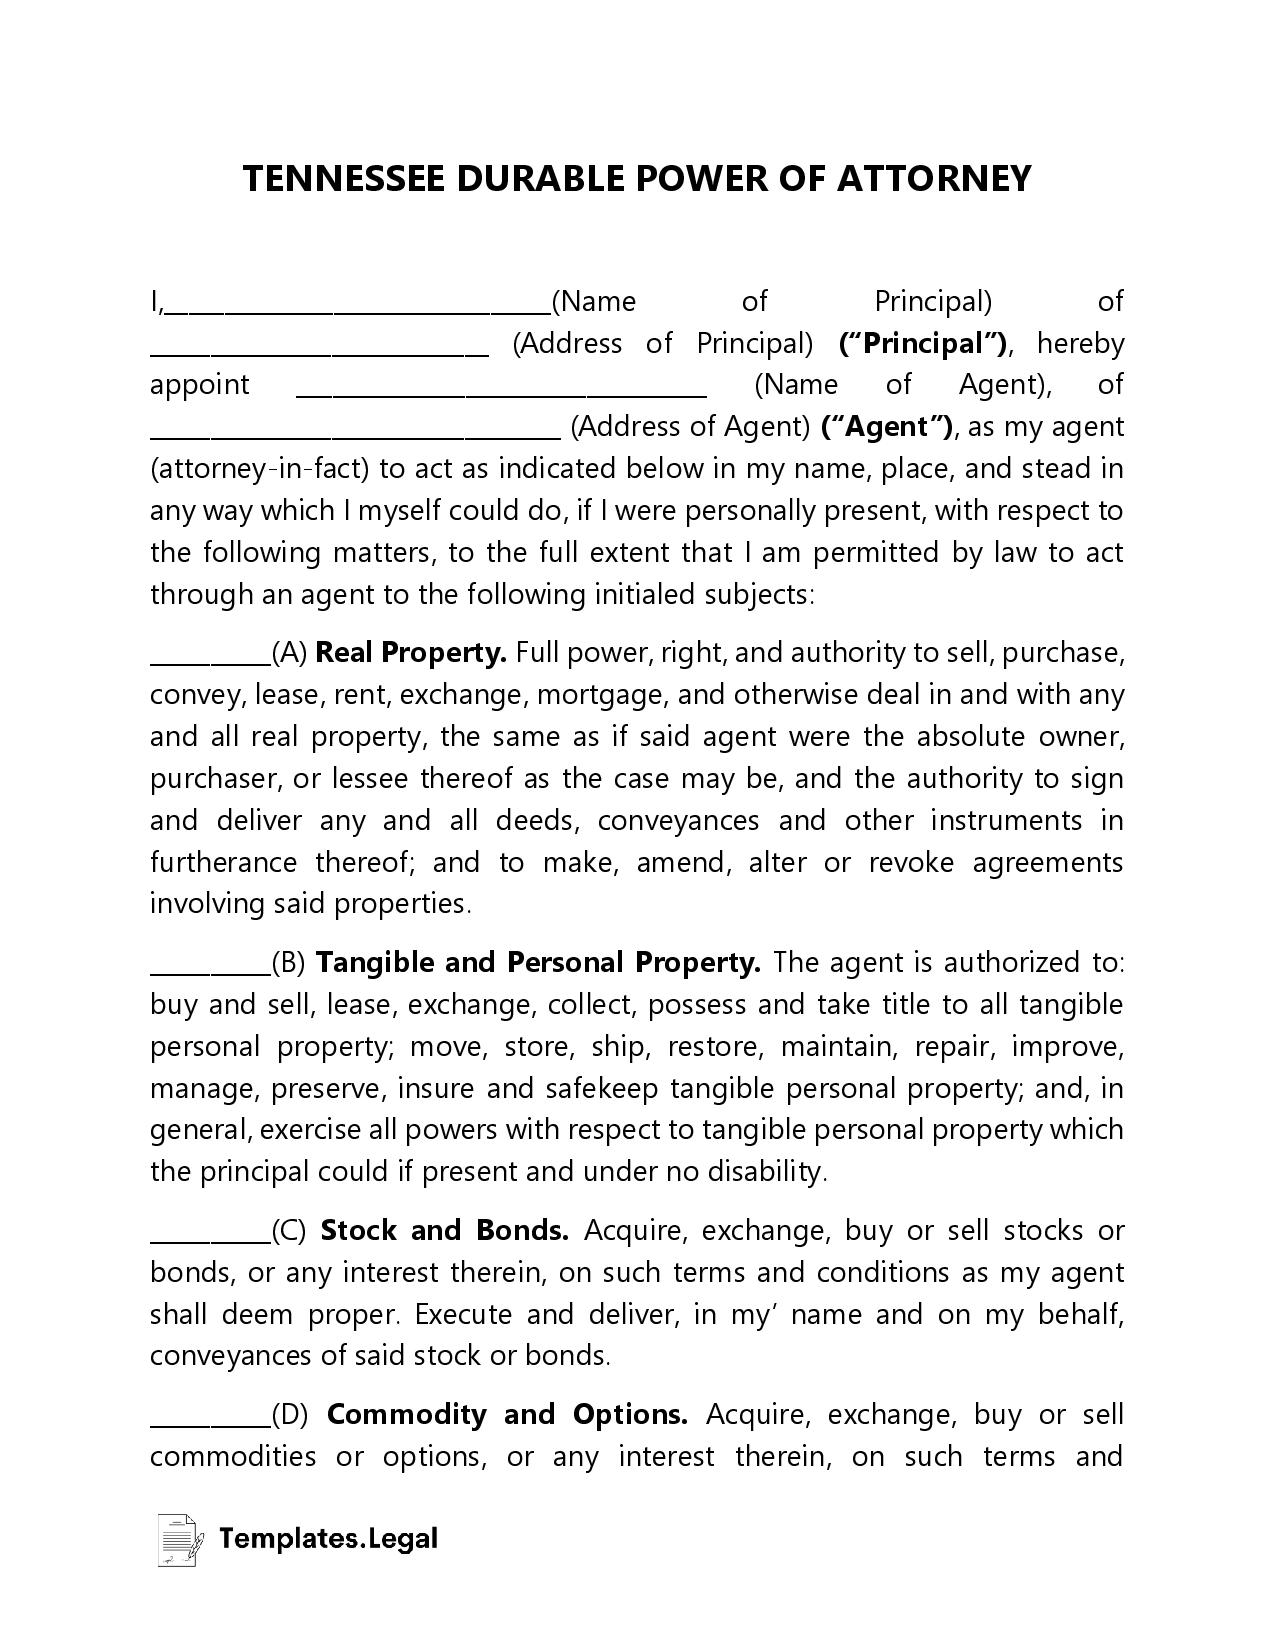 Tennessee Durable Power of Attorney - Templates.Legal